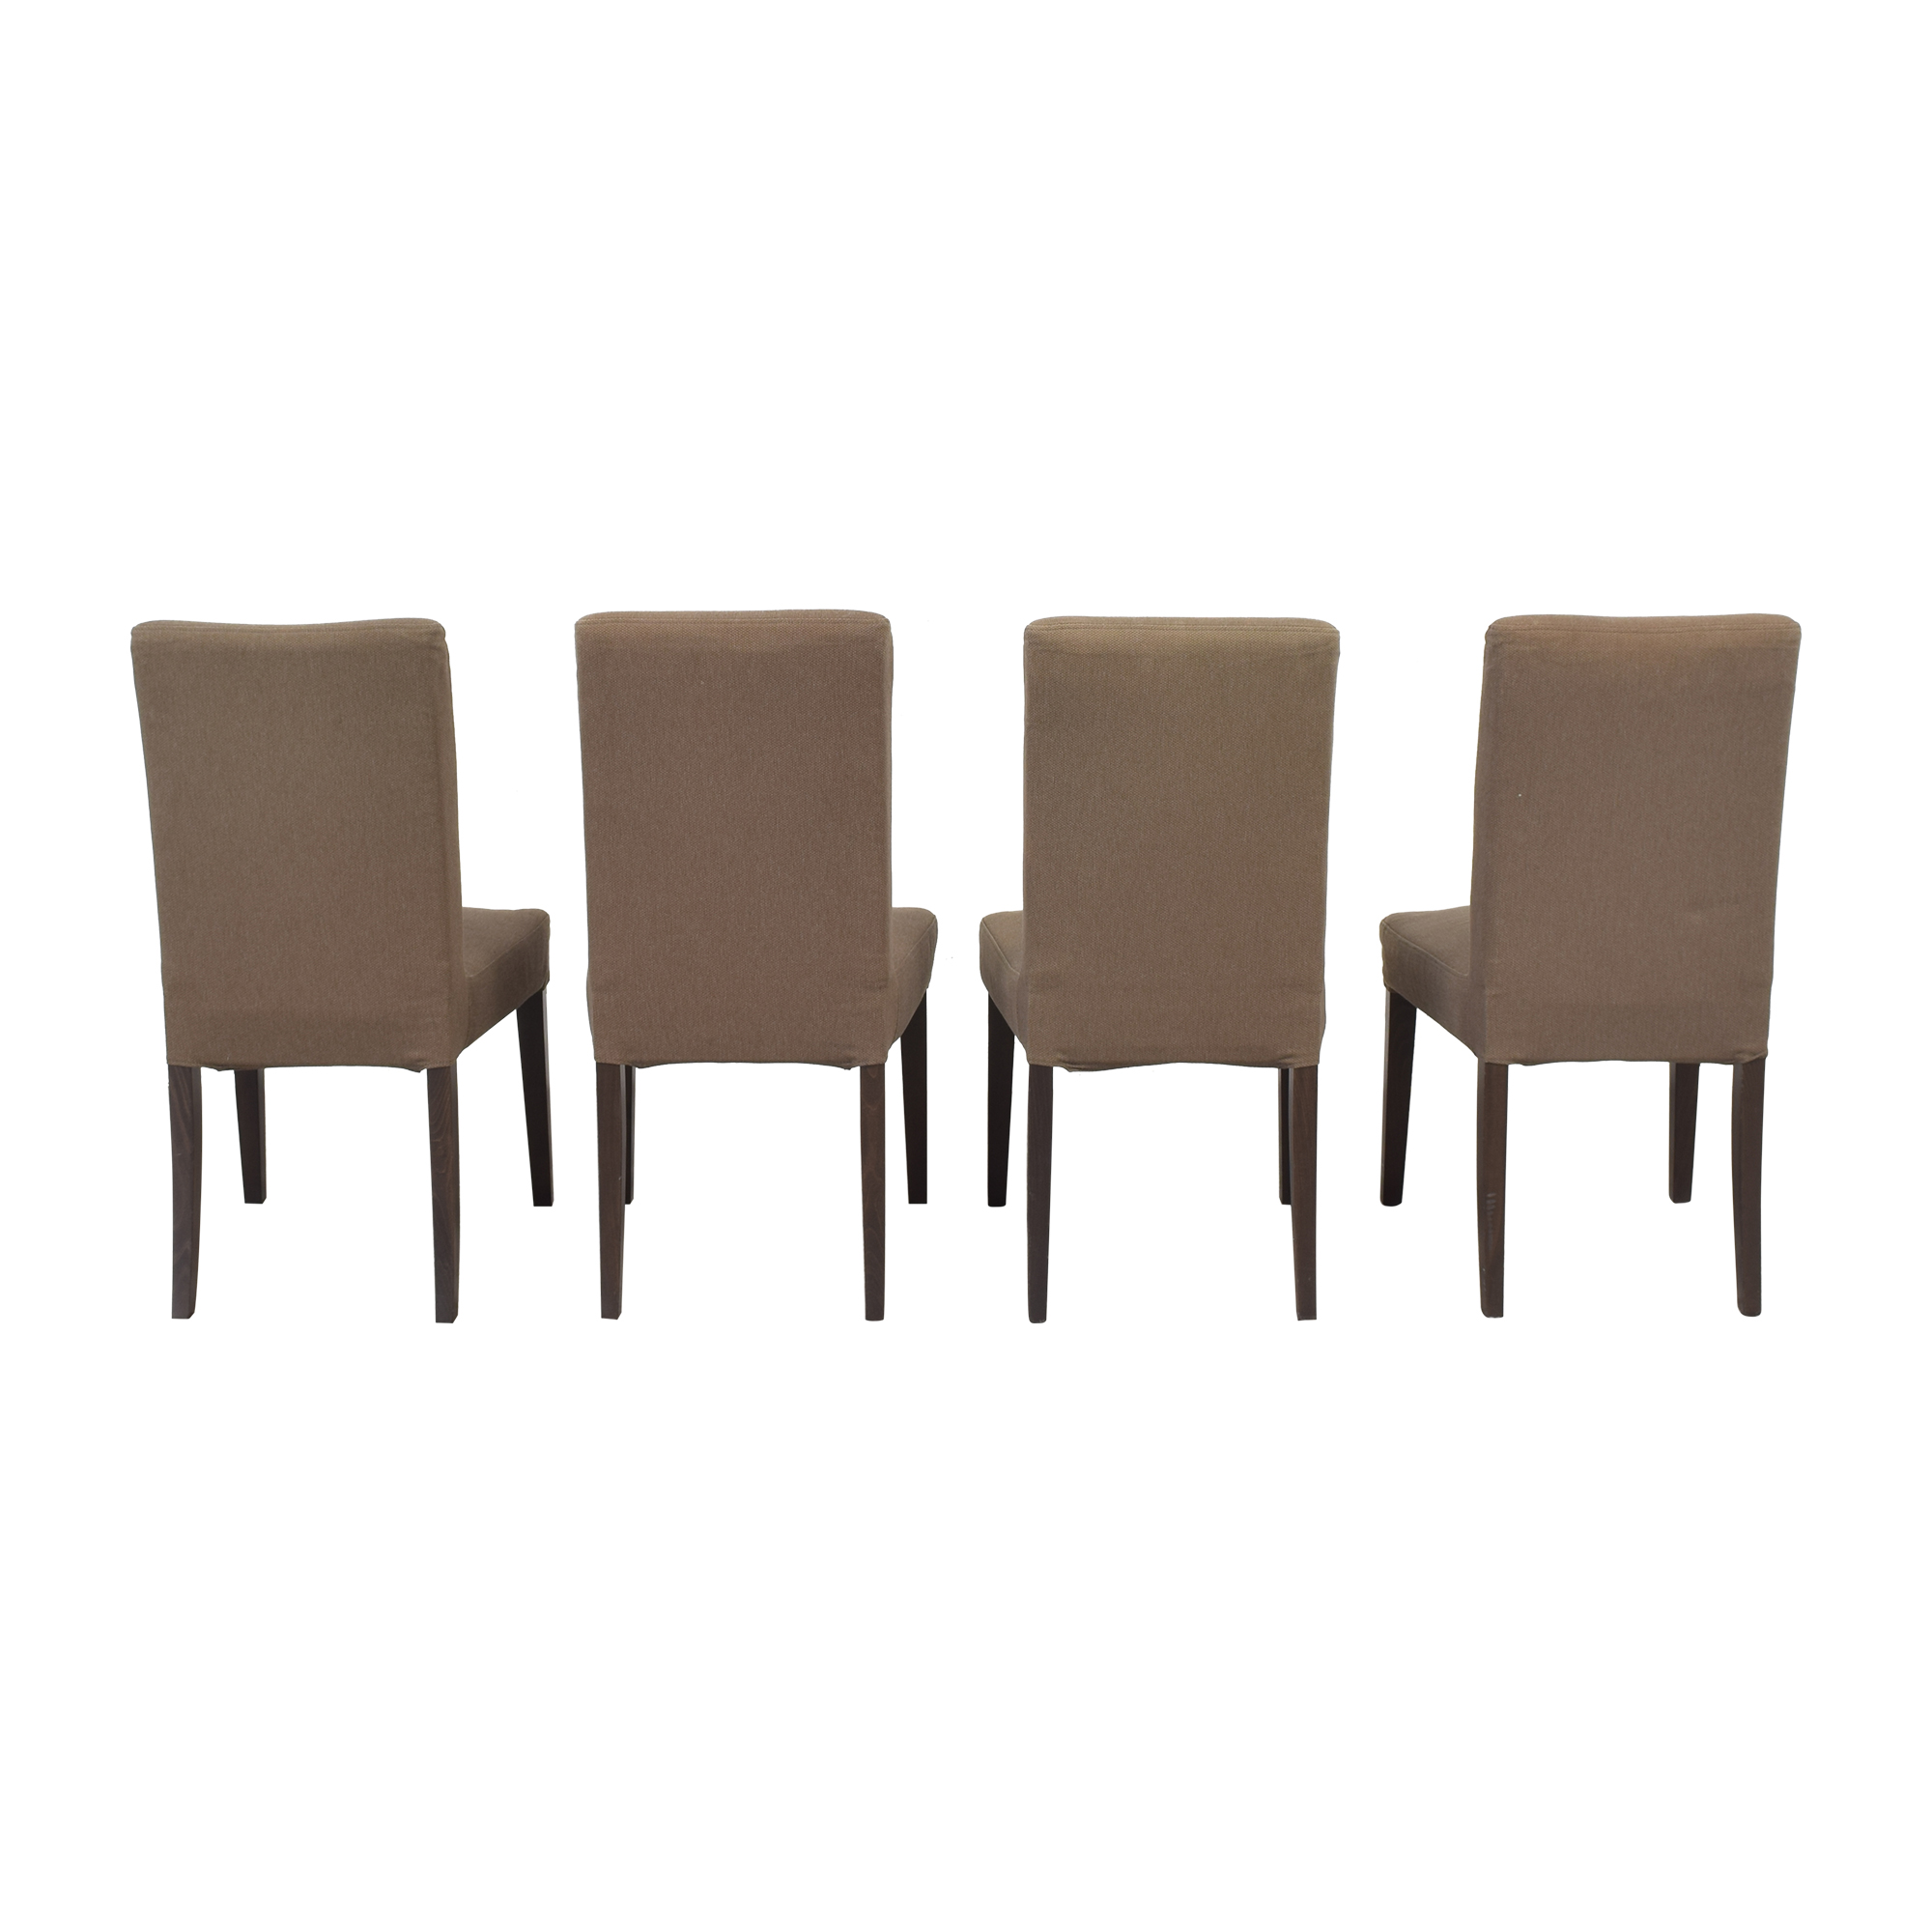 IKEA IKEA Henriksdal Dining Chair brown